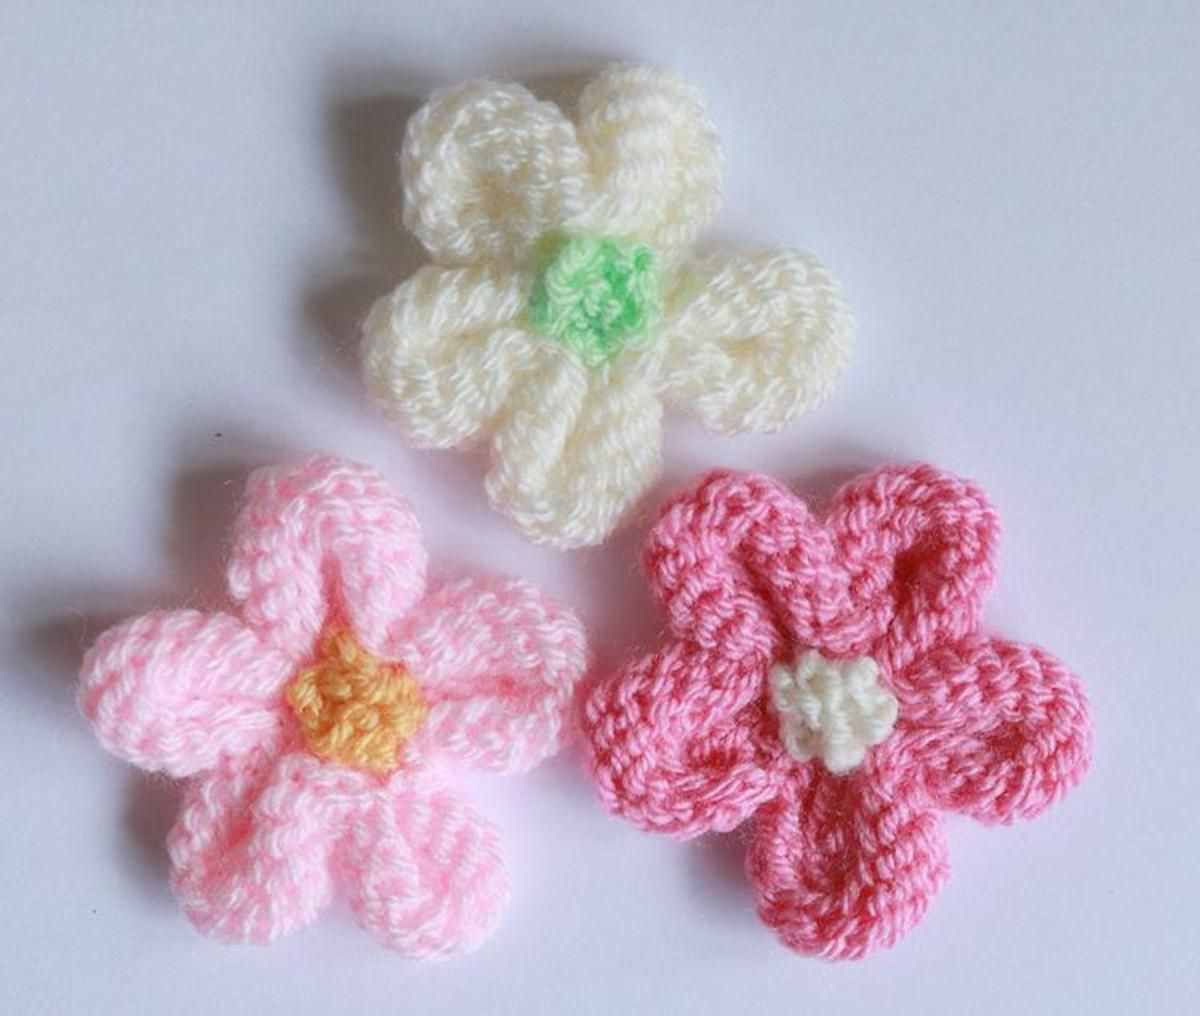 Knitted flower crafty embellishments pinterest knit knitted flower tutorial knitting pattern by julie taylor bankloansurffo Images